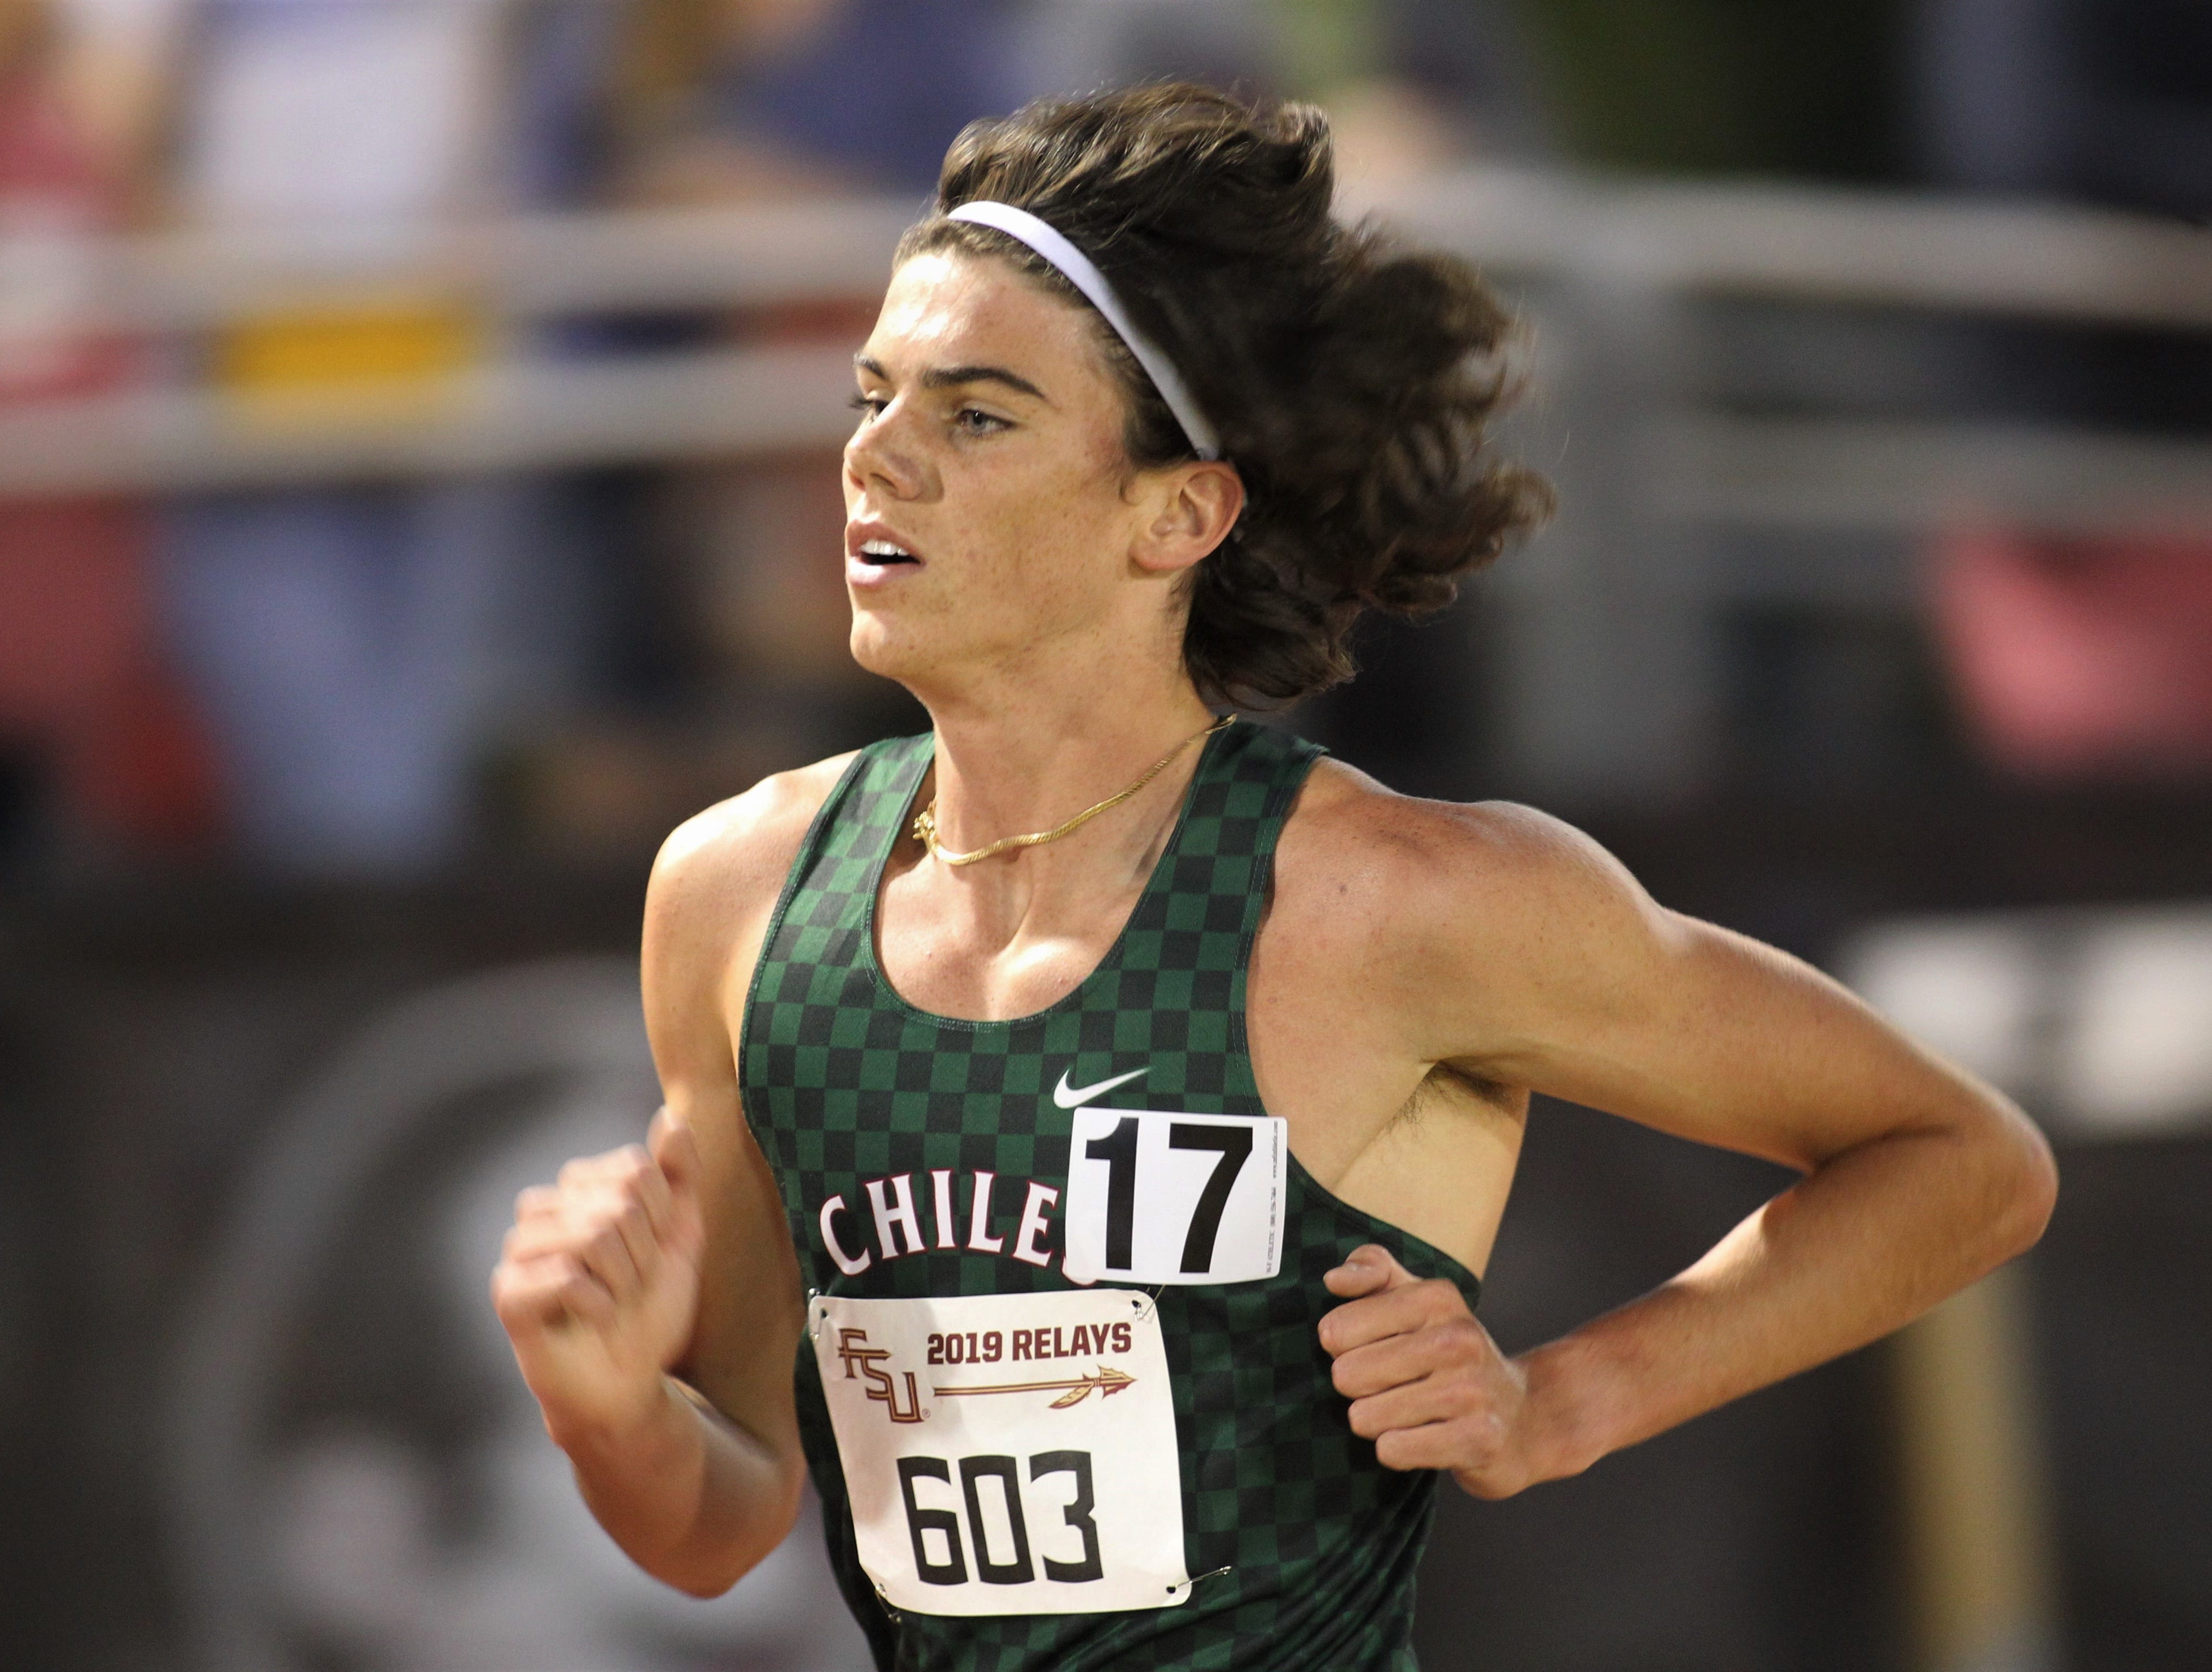 Chiles senior Connor Phillips competes in the 3200-meter invitational race during the 40th annual FSU Relays at Mike Long Track on Friday night, March 22, 2019.